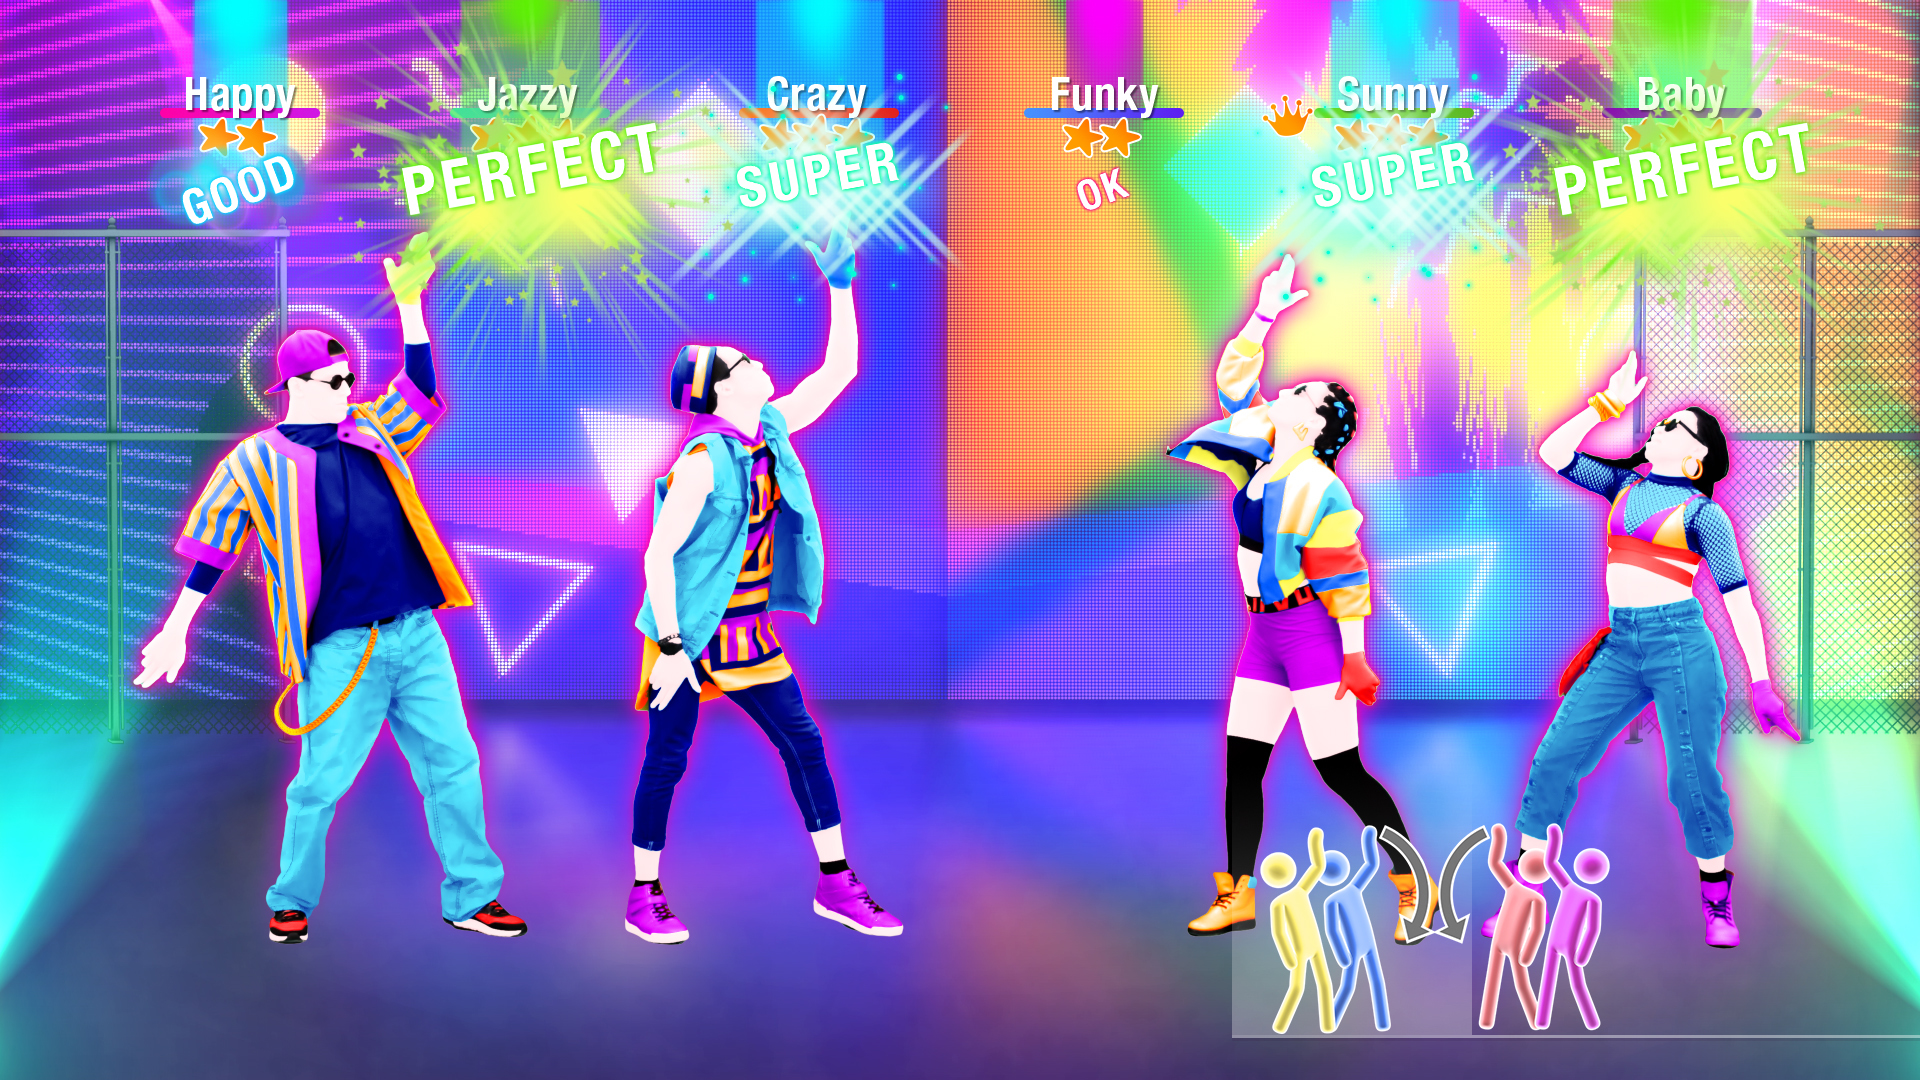 Background Images Read Games Review: Download Just Dance 2019 HD Wallpapers